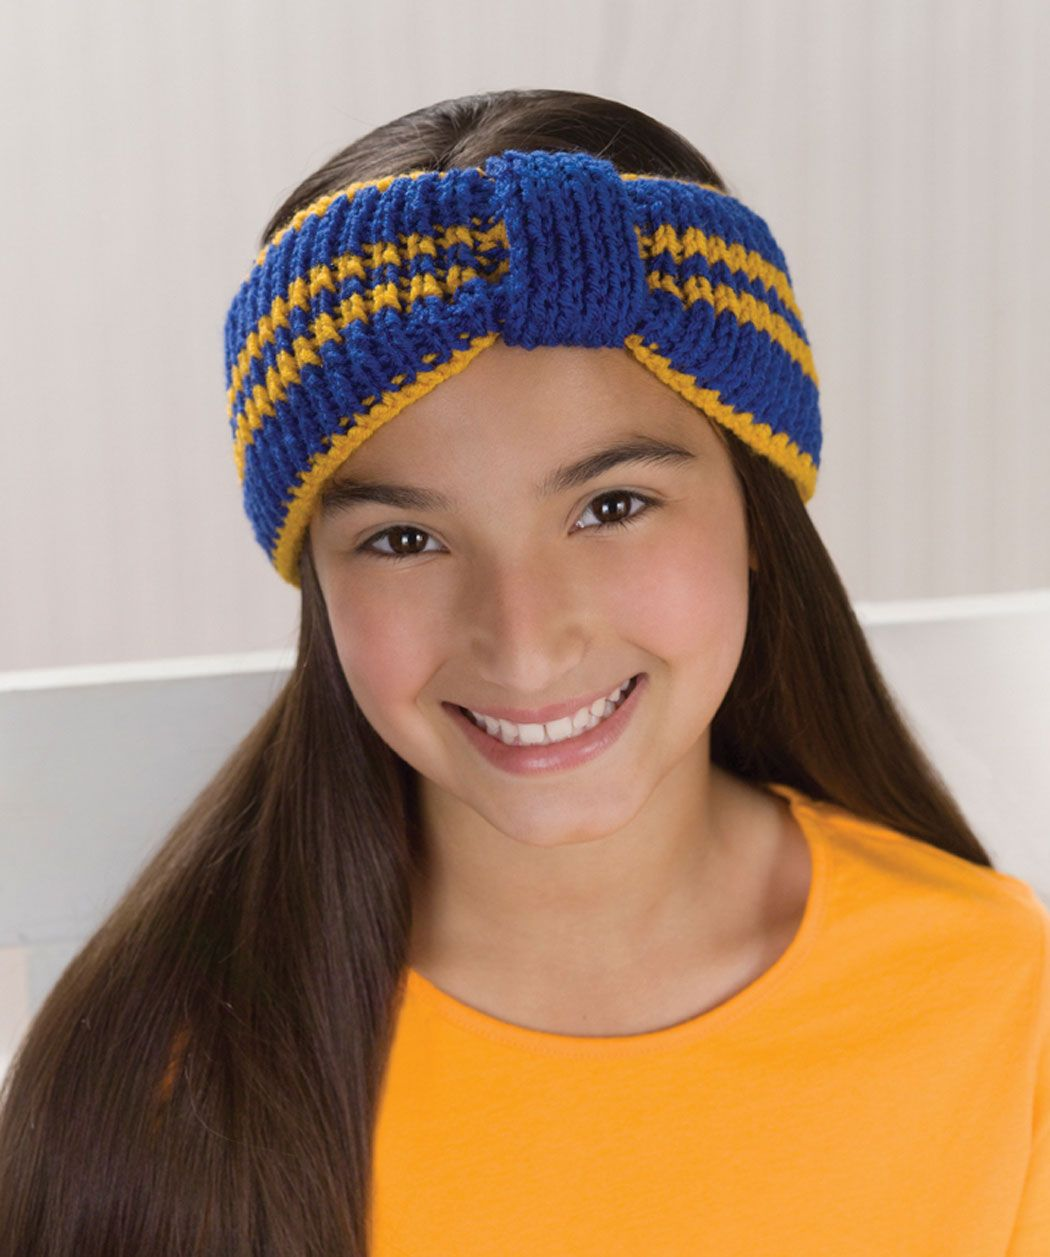 Sporty Headband--someone else suggested casting on 88 stitches ...